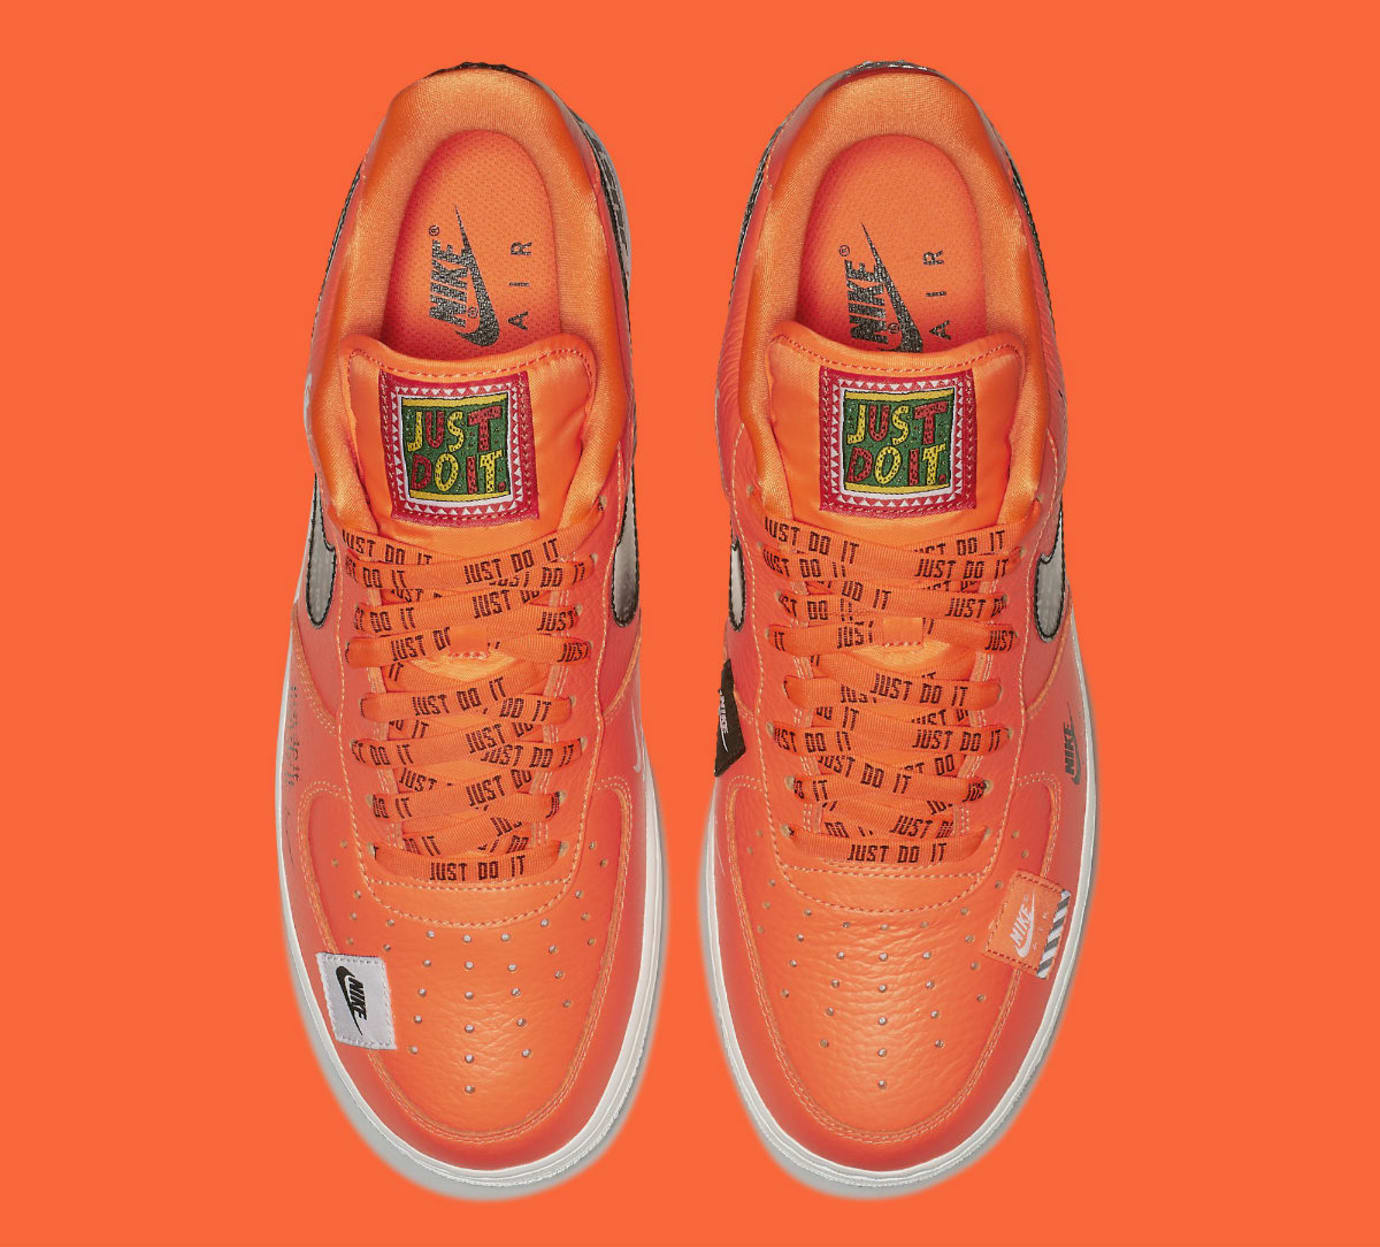 Nike Air Force 1 Low Just Do It Orange Release Date AR7719-800 Top